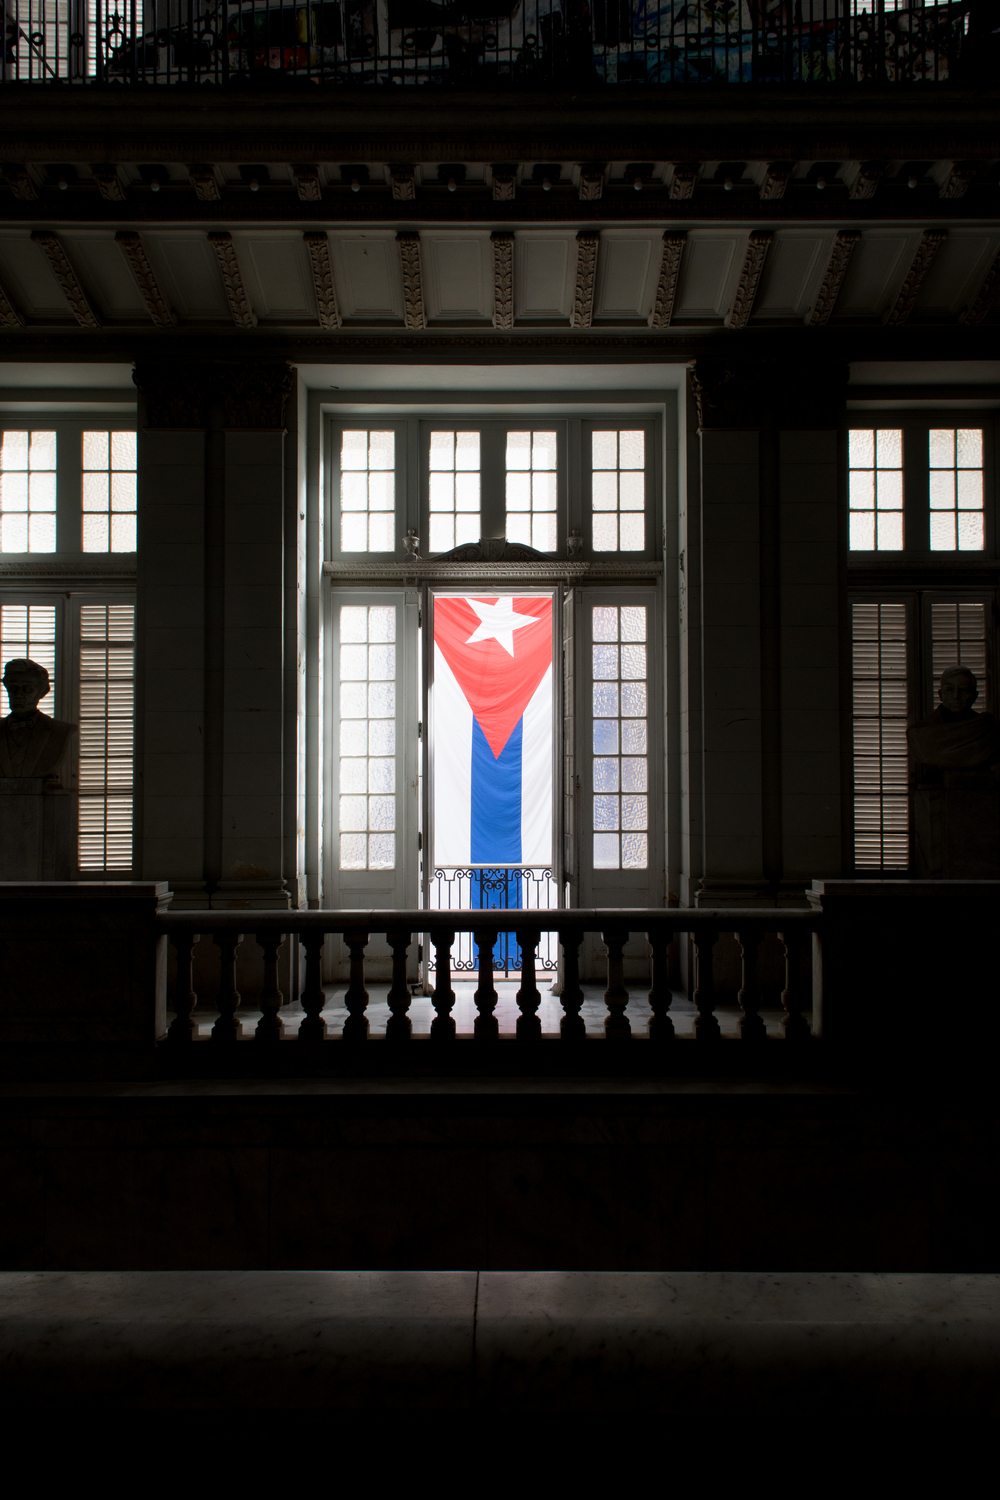 ISO 200 / 17mm / f7.1 / 1/100sec -   Cuban flag hanging in the Museum of the Revolution. The building used to be the Presidential Palanace before it was stormed by the Fidel and his guys.